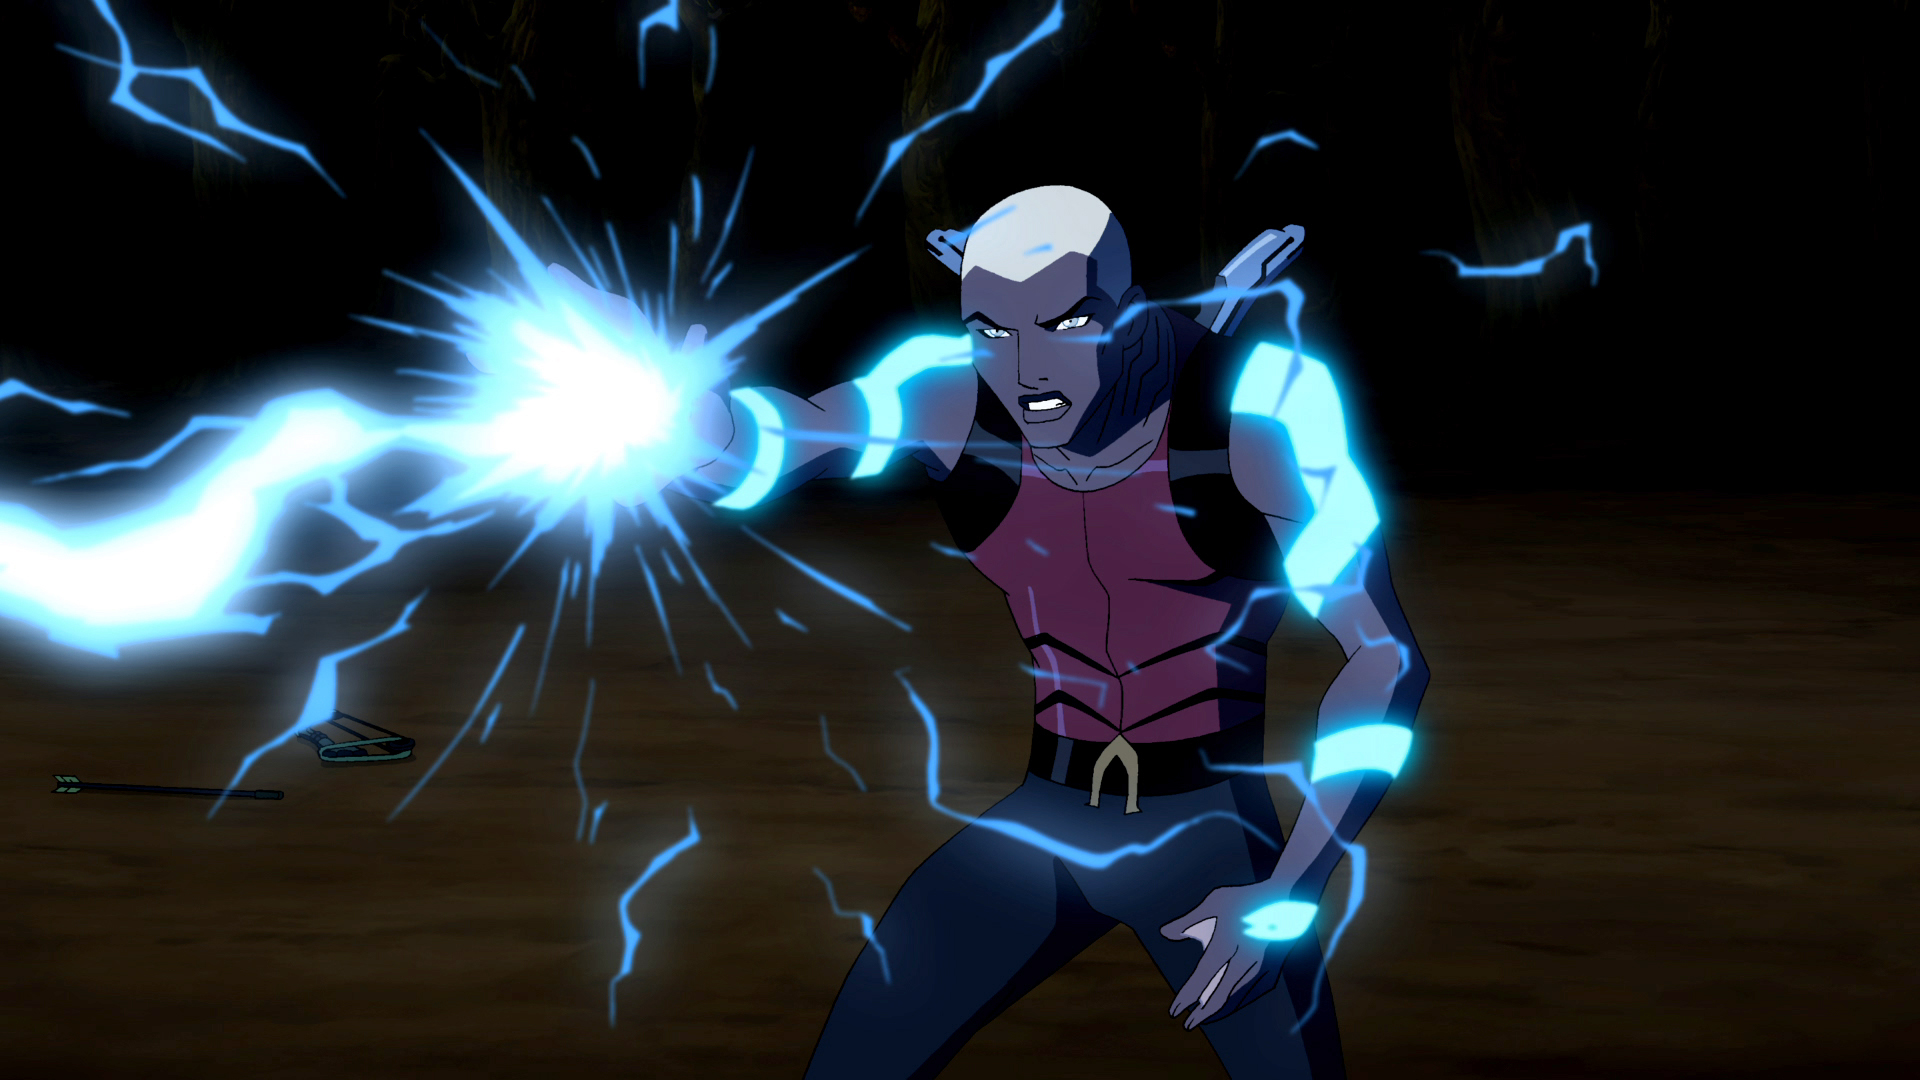 You guys, 'Young Justice' is returning with new episodes and I'm so flipping excited.